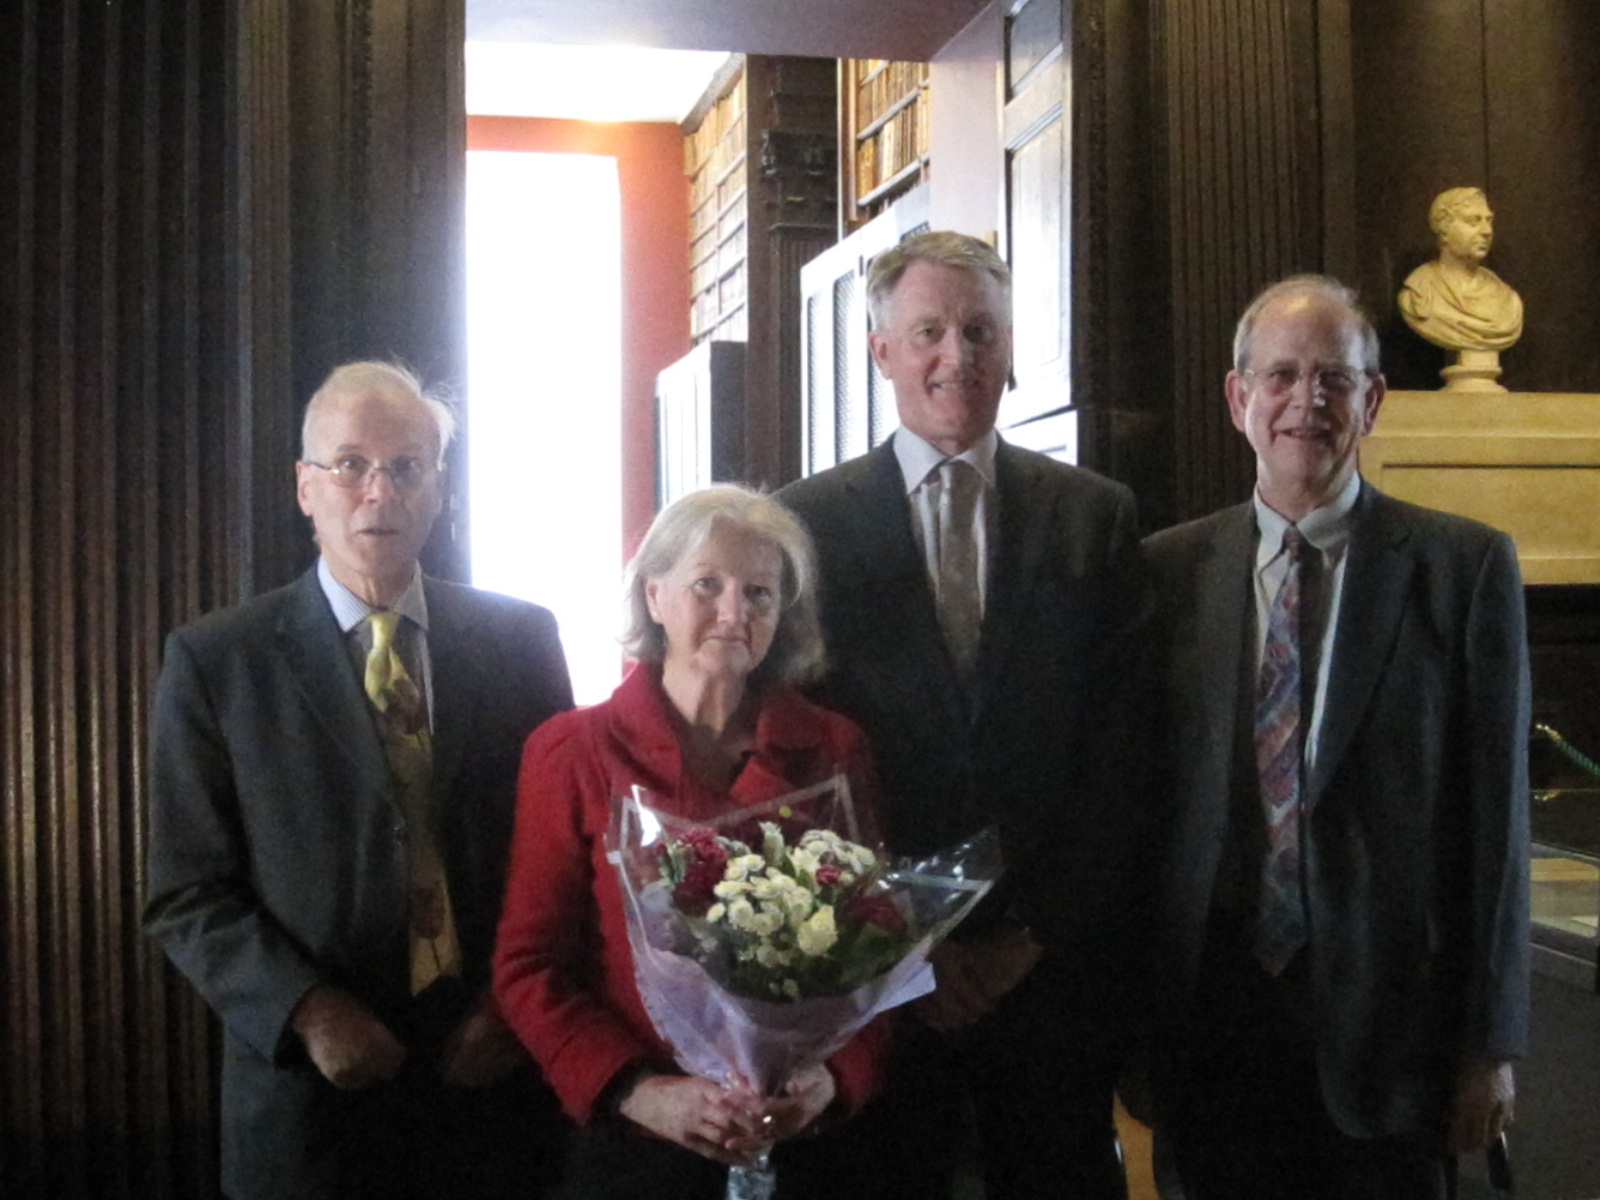 Charles and Gillie Benson, Robin Adams and Andrew Carpenter in the Long Room